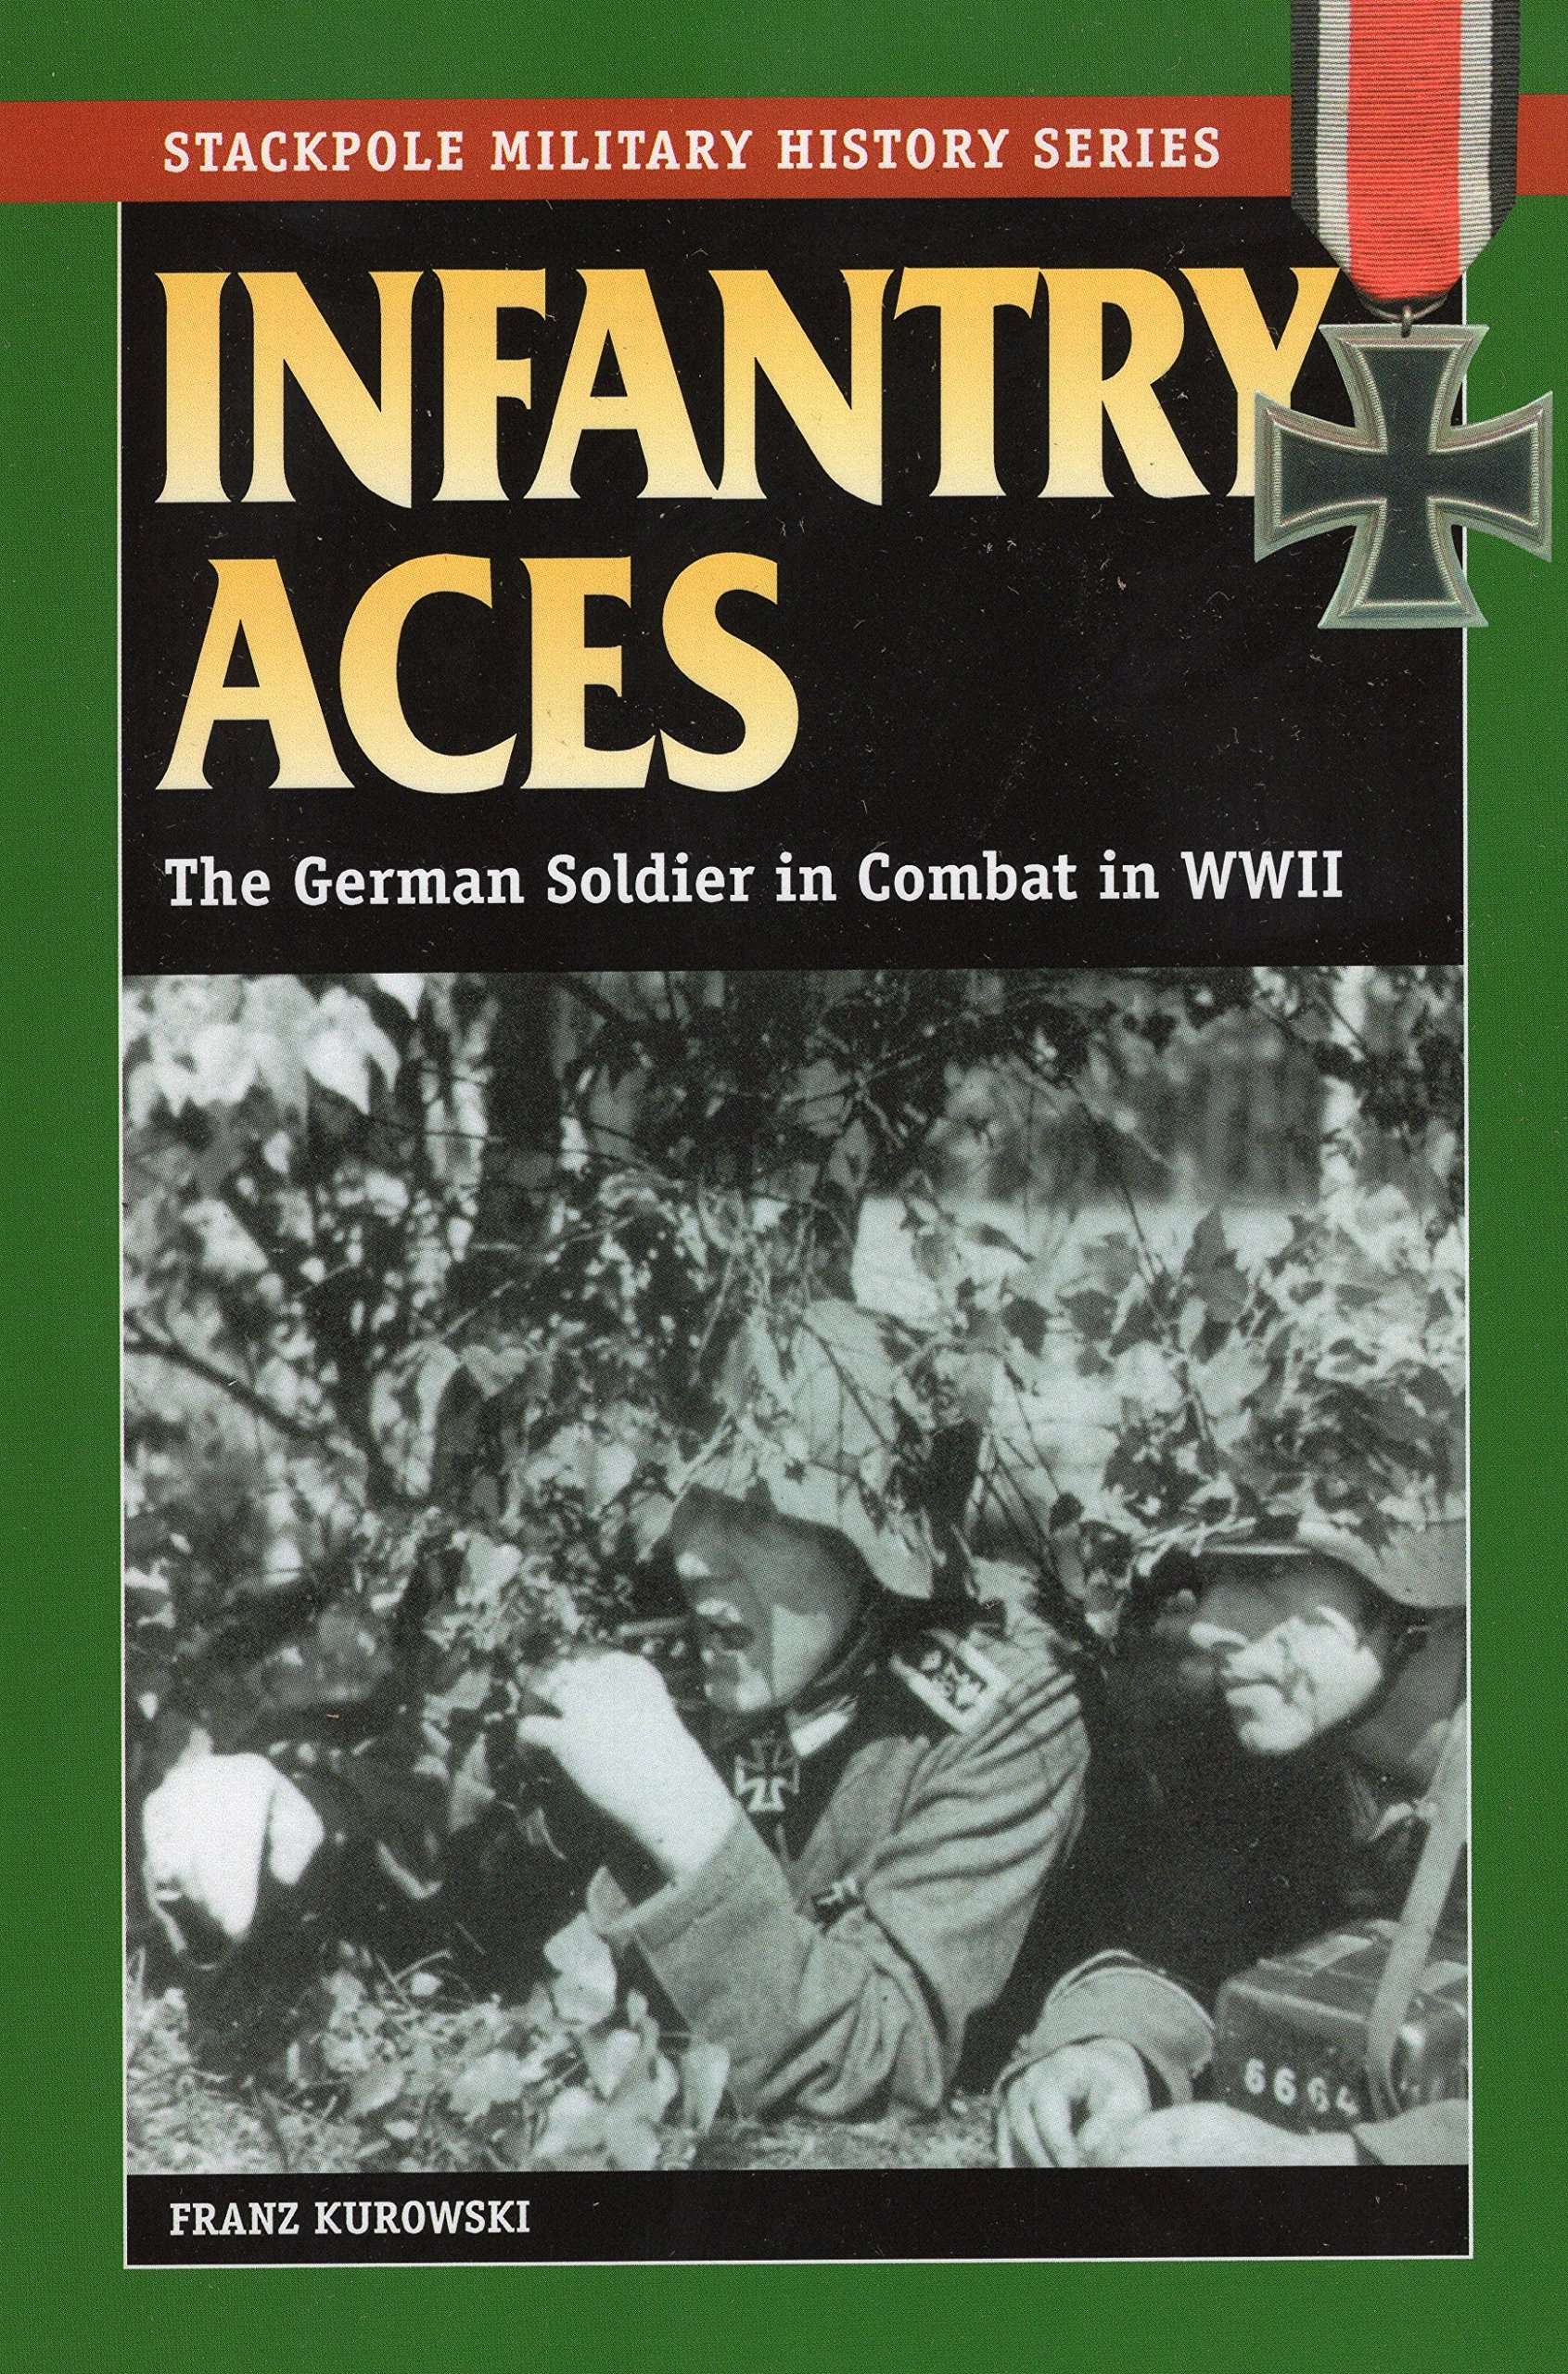 Infantry Aces: The German Soldier in Combat in WWII (Stackpole Military History Series) pdf